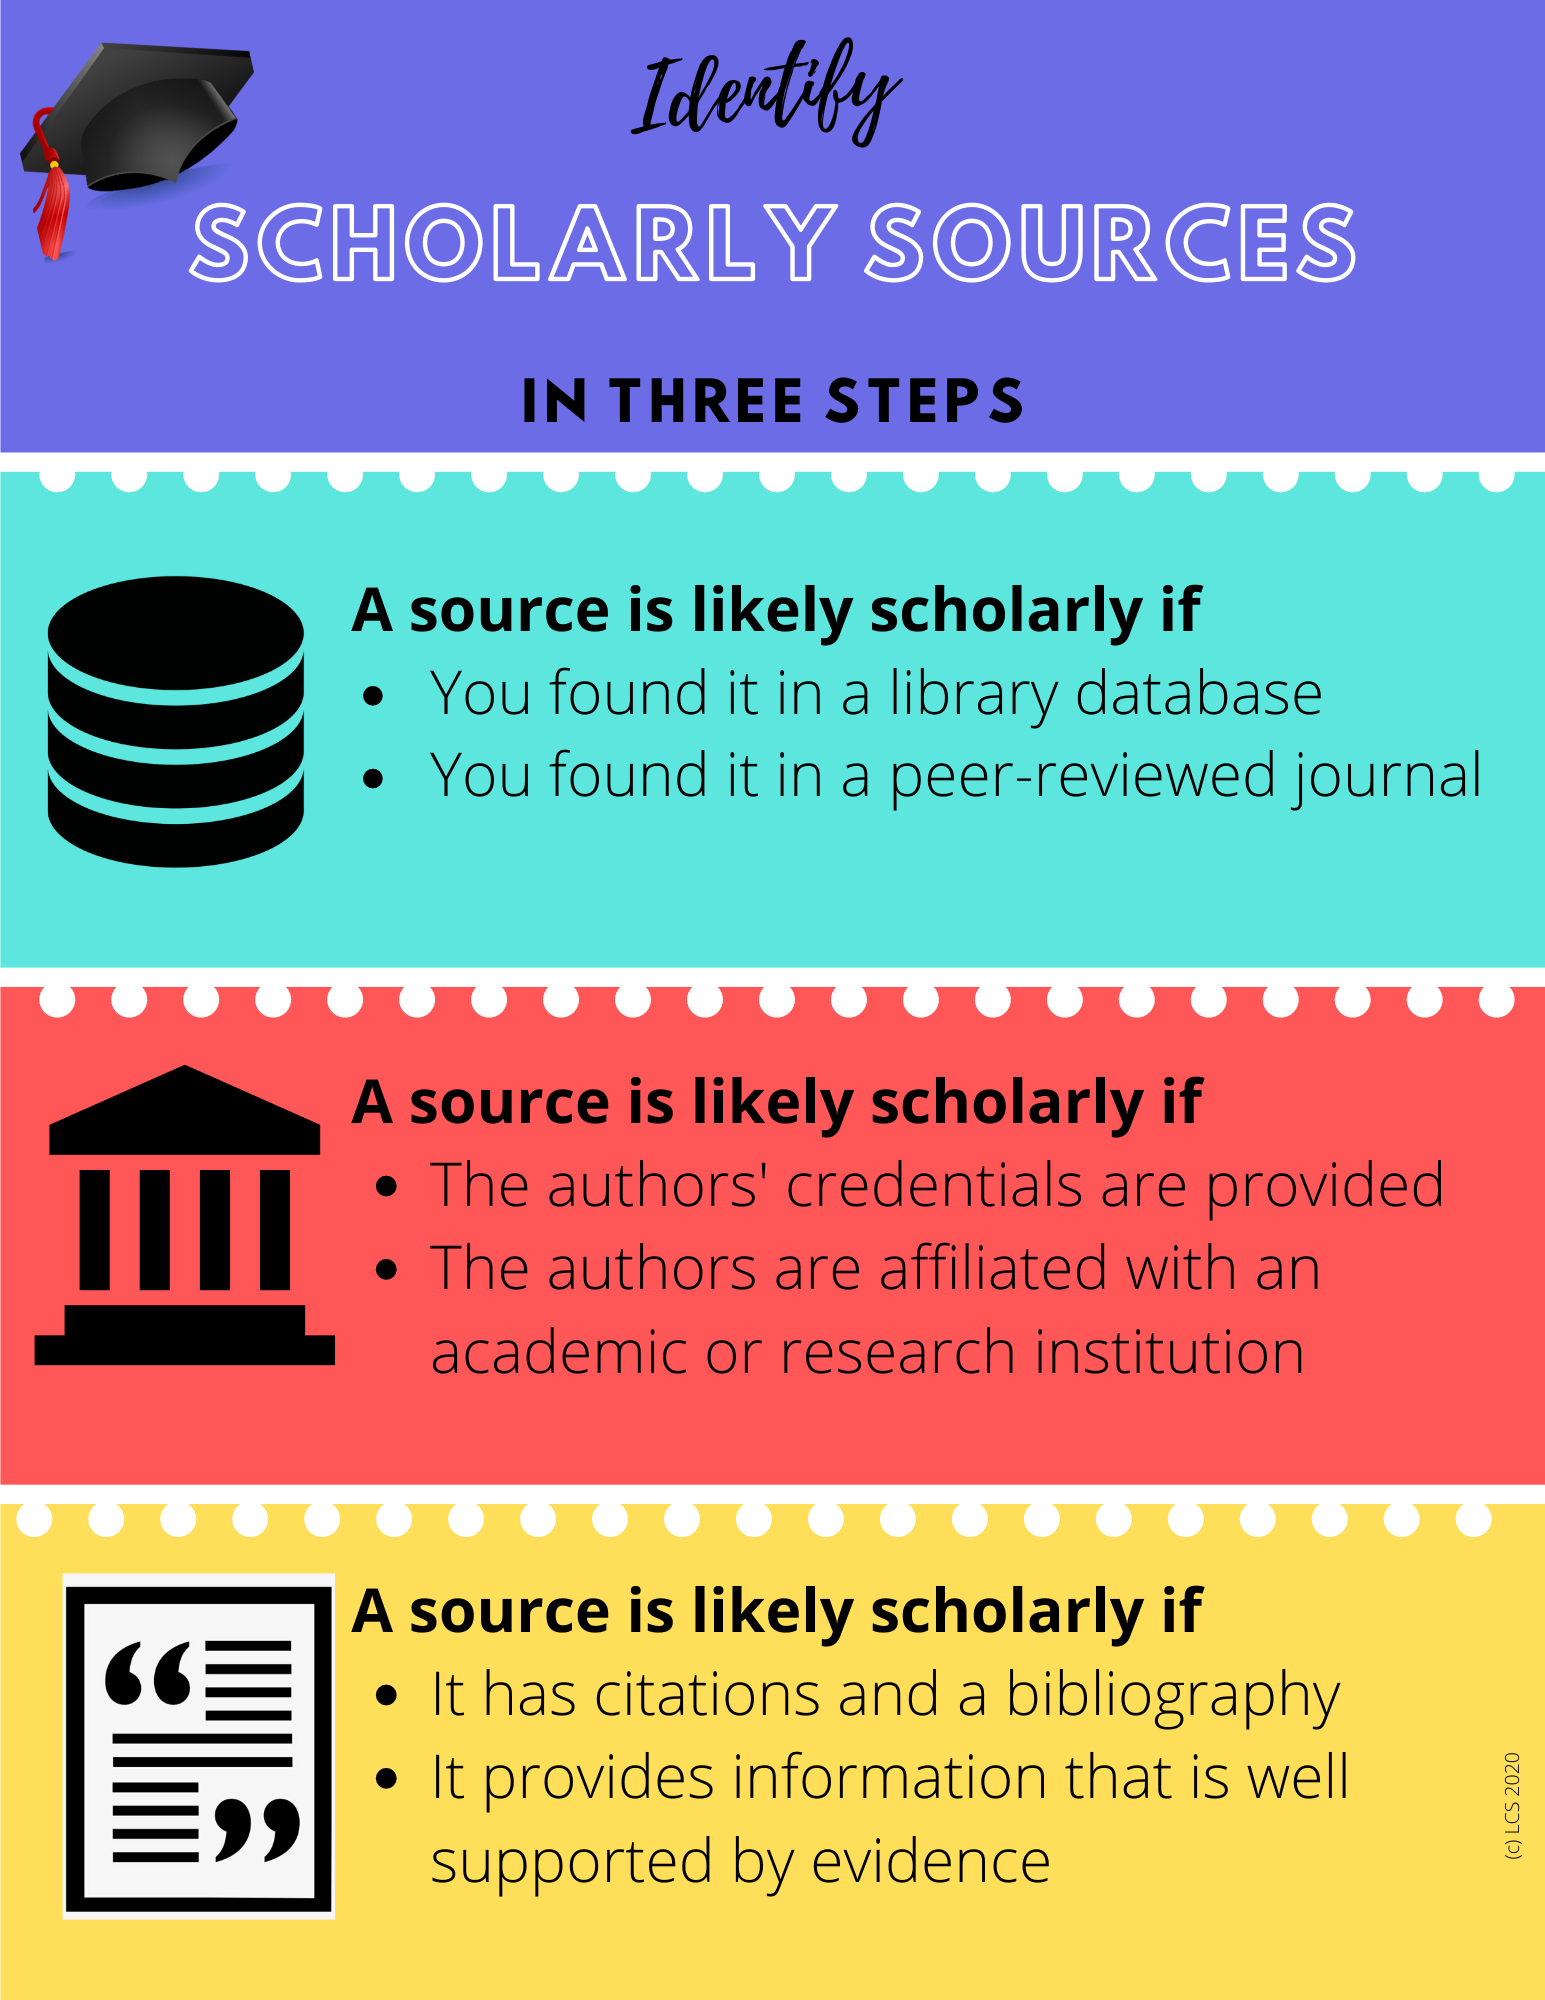 identify scholarly sources infographic